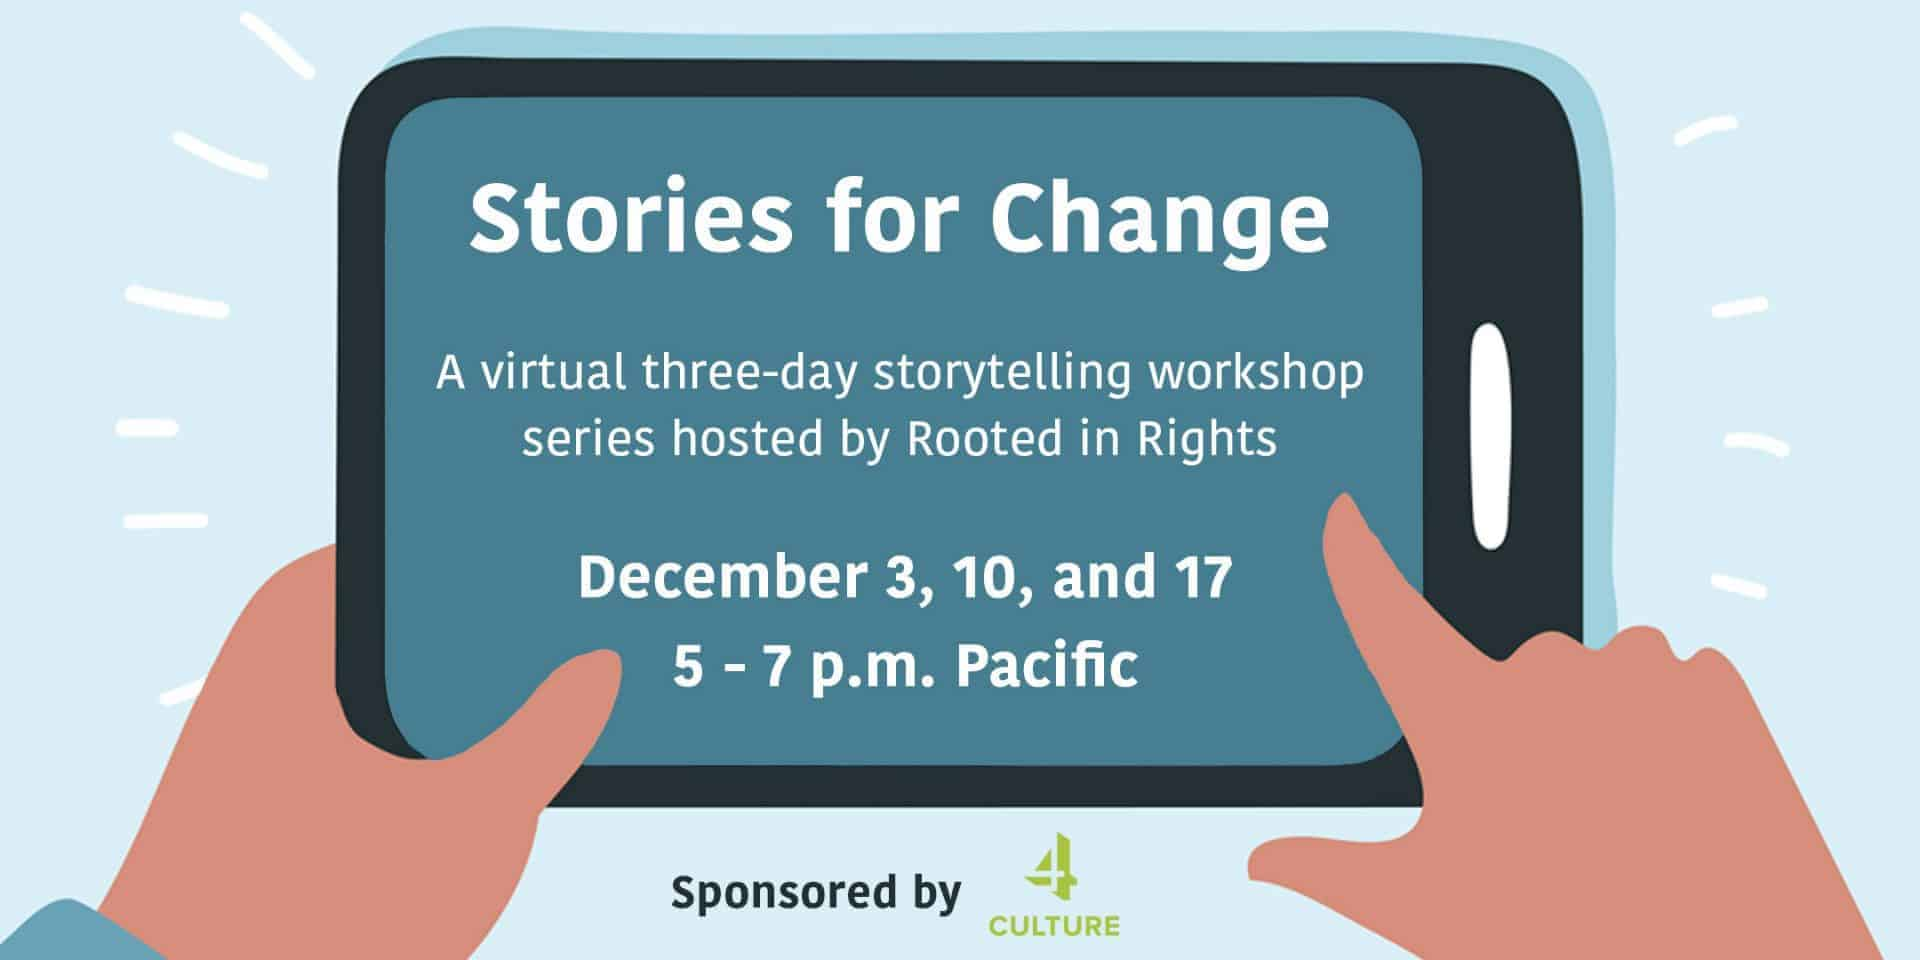 "An illustration of two hands holding a mobile device. On the screen, white text reads, ""Stories for Change. A virtual three-day storytelling workshop series hosted by Rooted in Rights. December 3, 10, and 17. 5 - 7 p.m. Pacific."" White beaming lines surround the mobile device to express excitement. At the bottom of the illustration, black text reads, ""Sponsored by"" and a lime green logo that says 4 Culture is next to it."